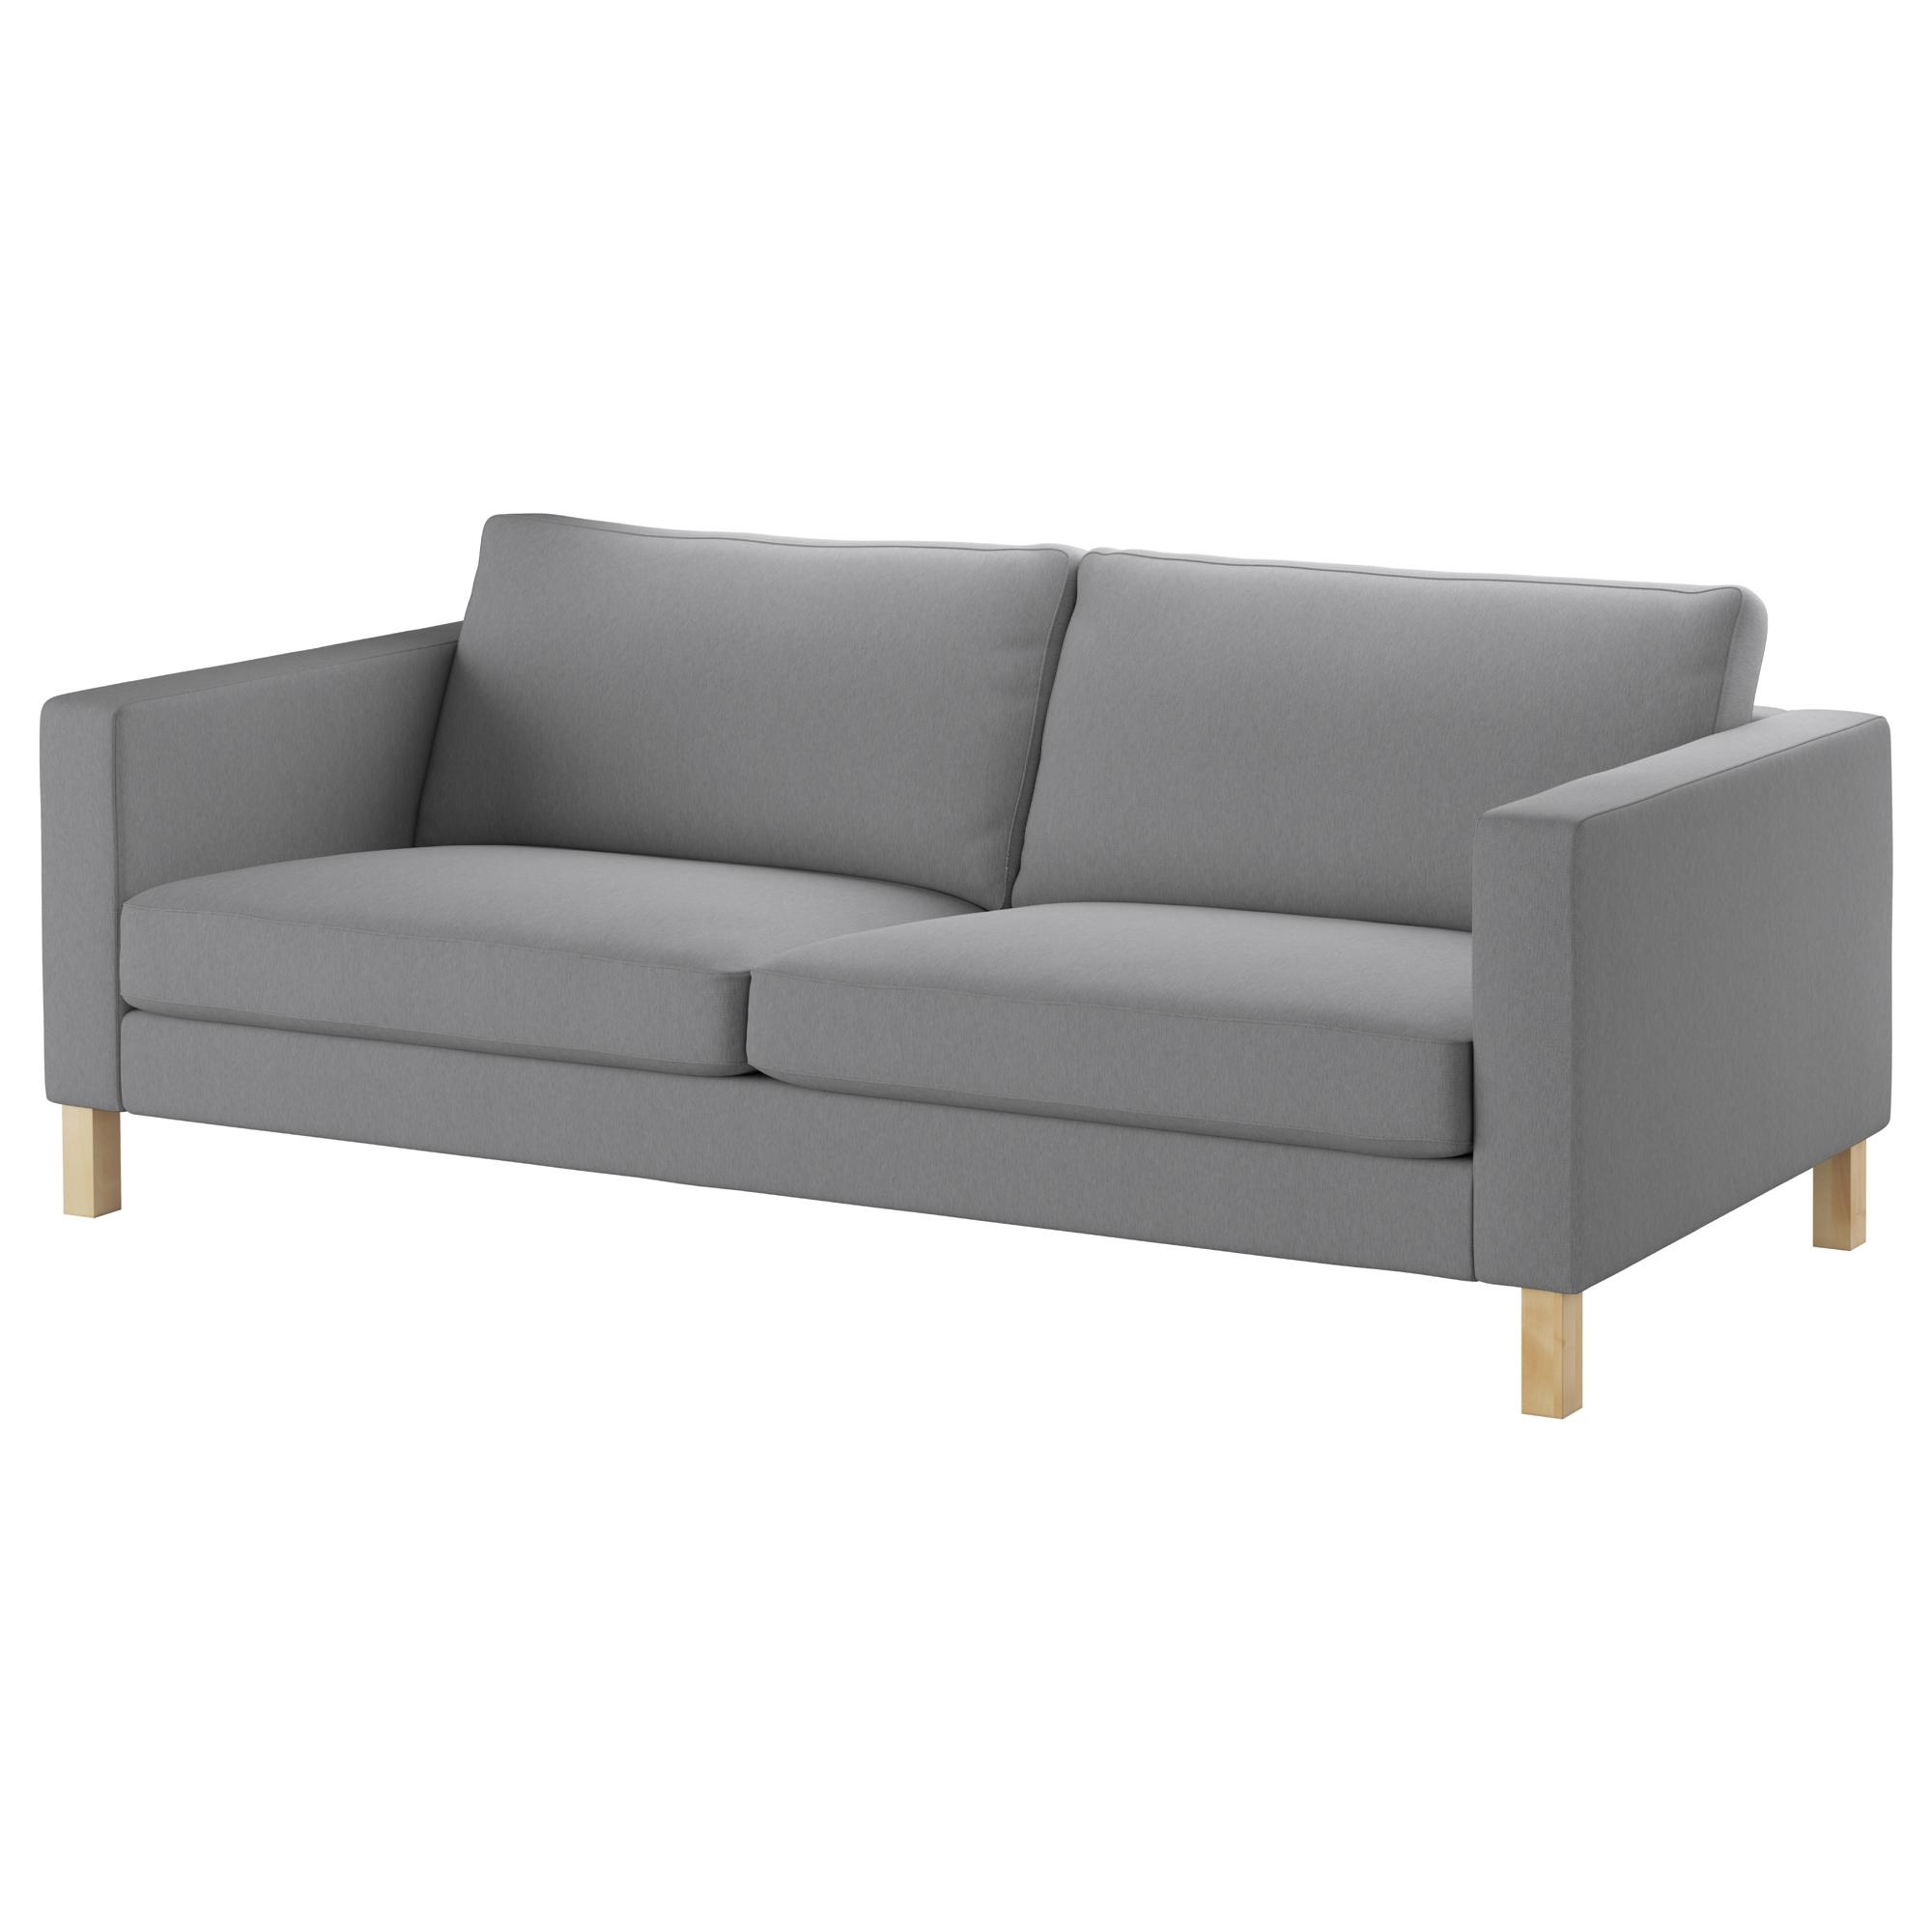 Inspirational narrow depth sofa marmsweb marmsweb Sofa depth